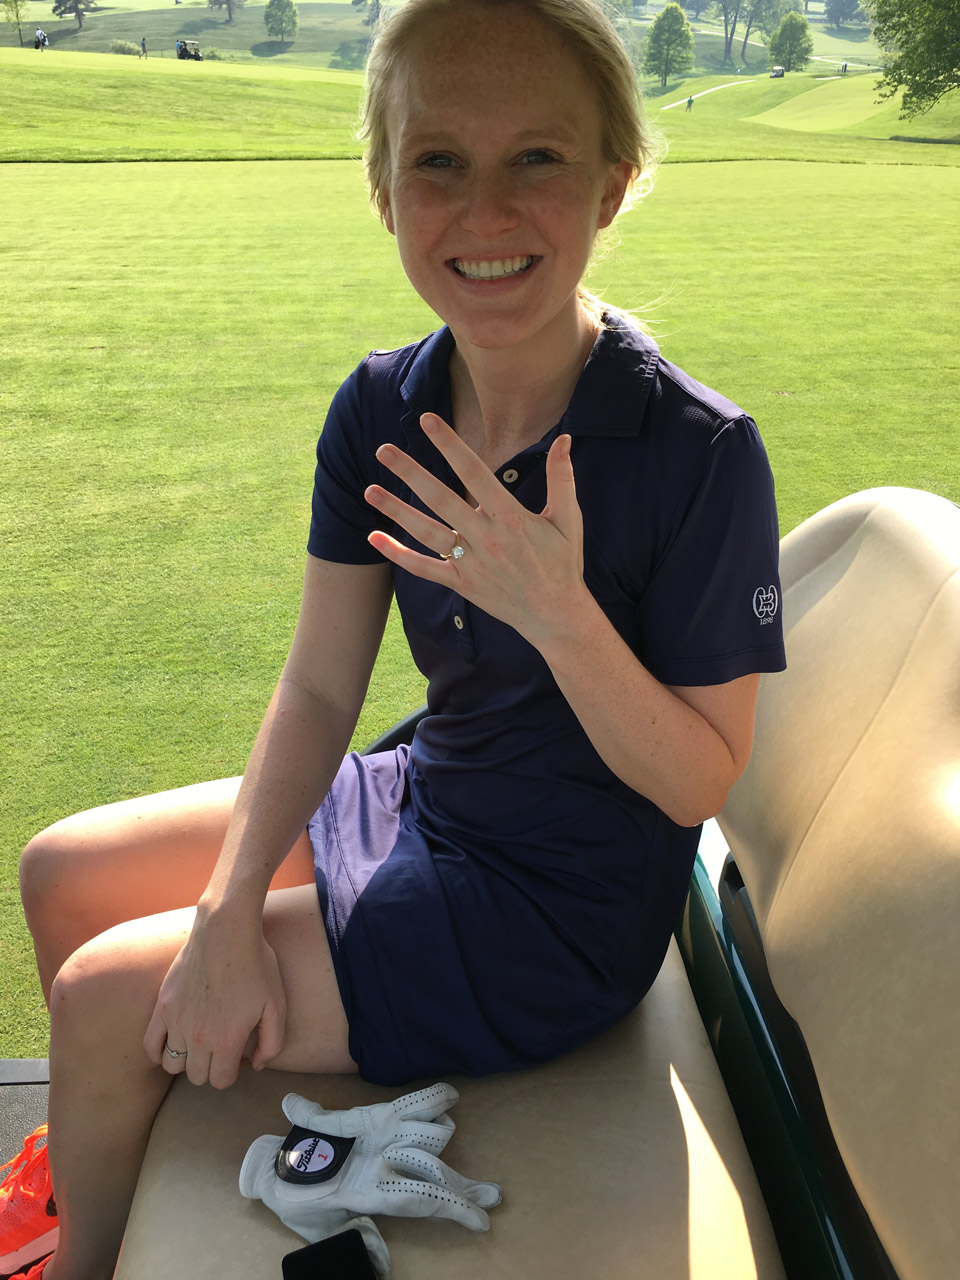 The blushing bride-to-be looks thrilled by both her hole-in-one AND her engagement.